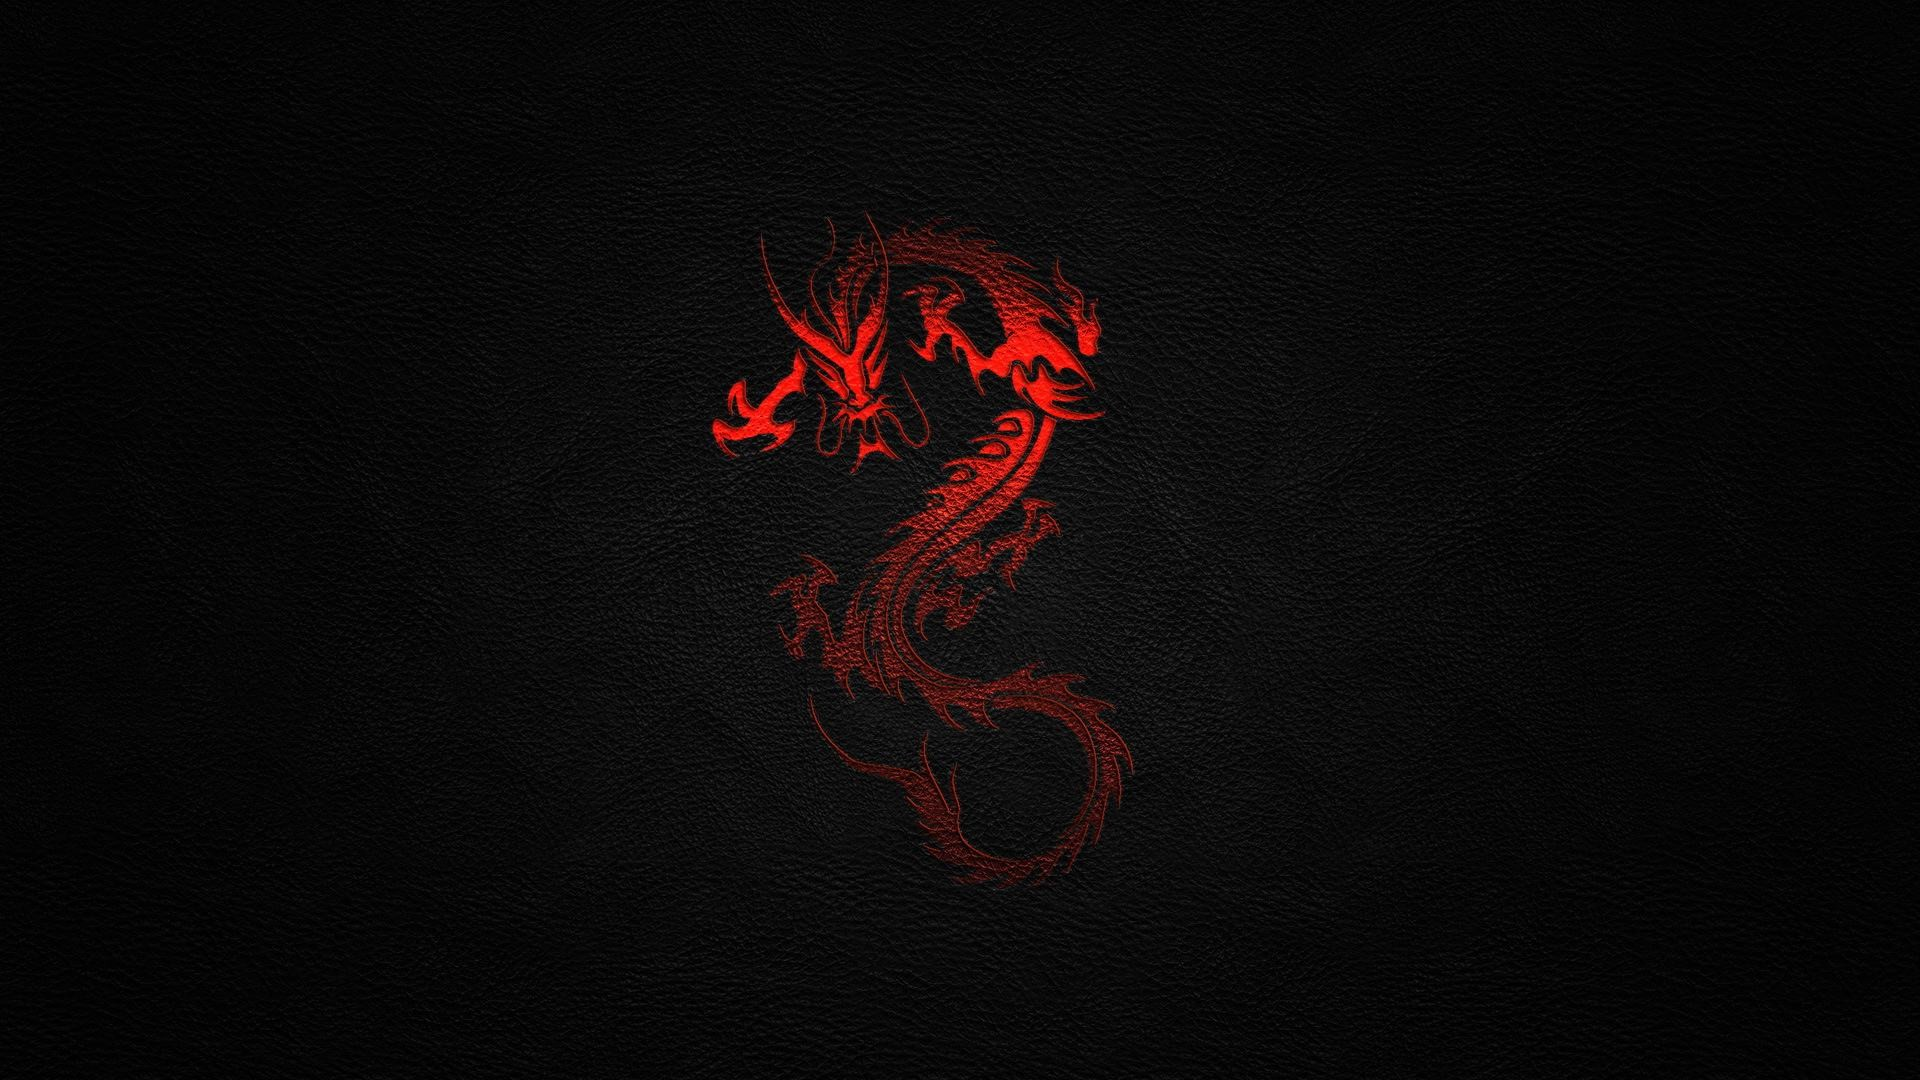 1920x1080 Red Dragon Wallpapers - Wallpaper Cave